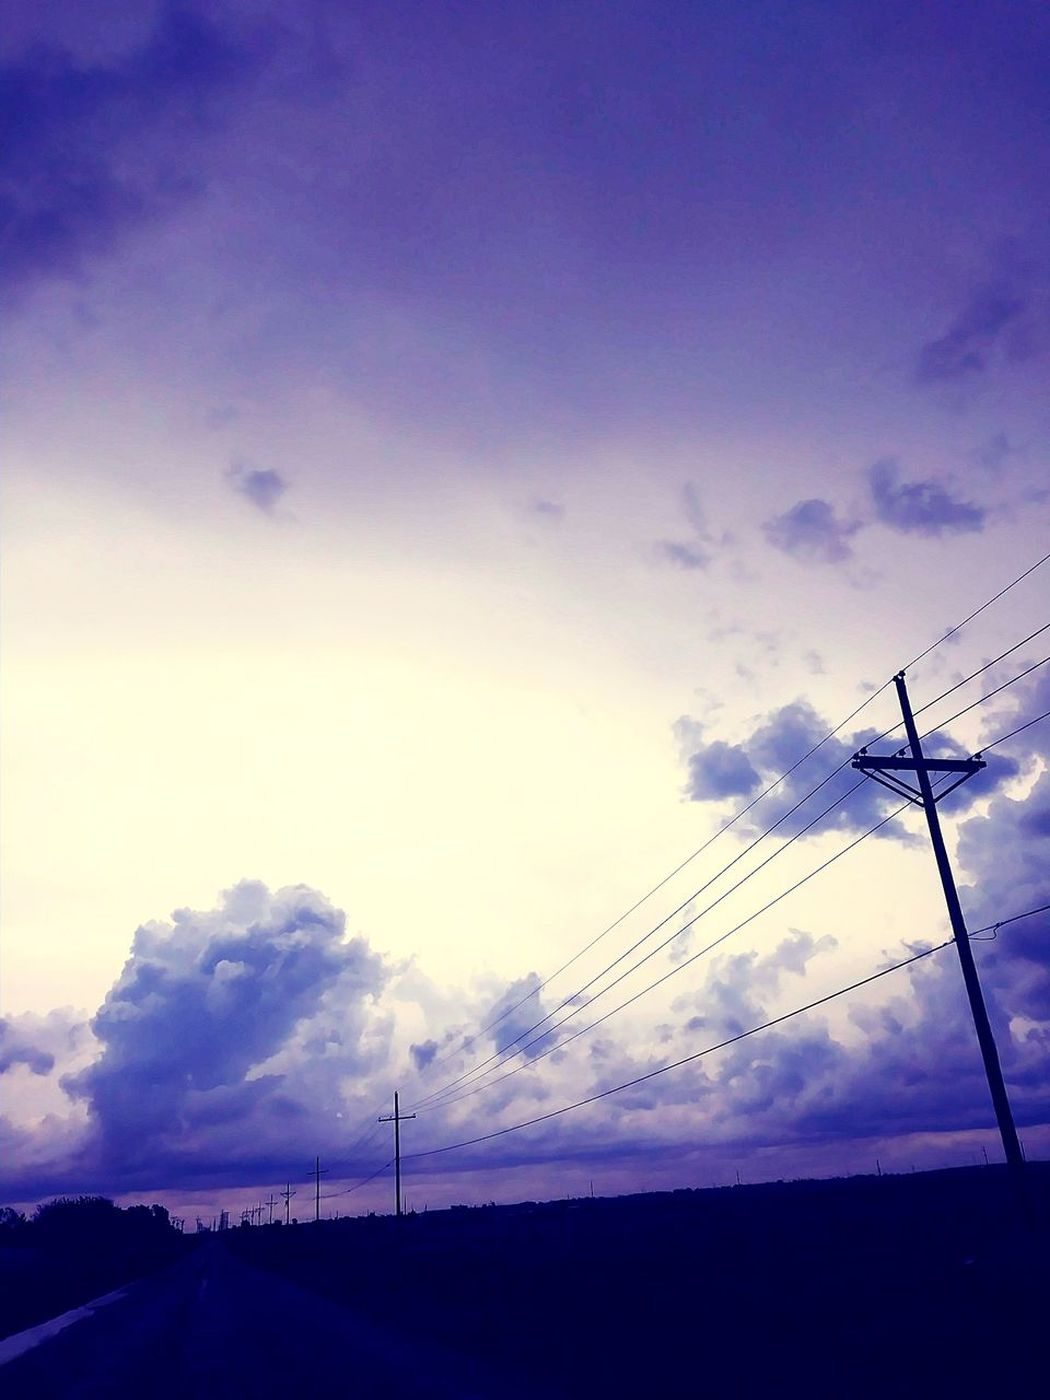 Technology Cloud - Sky Antenna - Aerial No People Silhouette Bird Low Angle View Cable Sky Outdoors Sunset Day Nature Telephone Line Nature God's Beauty Power Line  Landscape Electricity  Amarillos♥ God Is Good